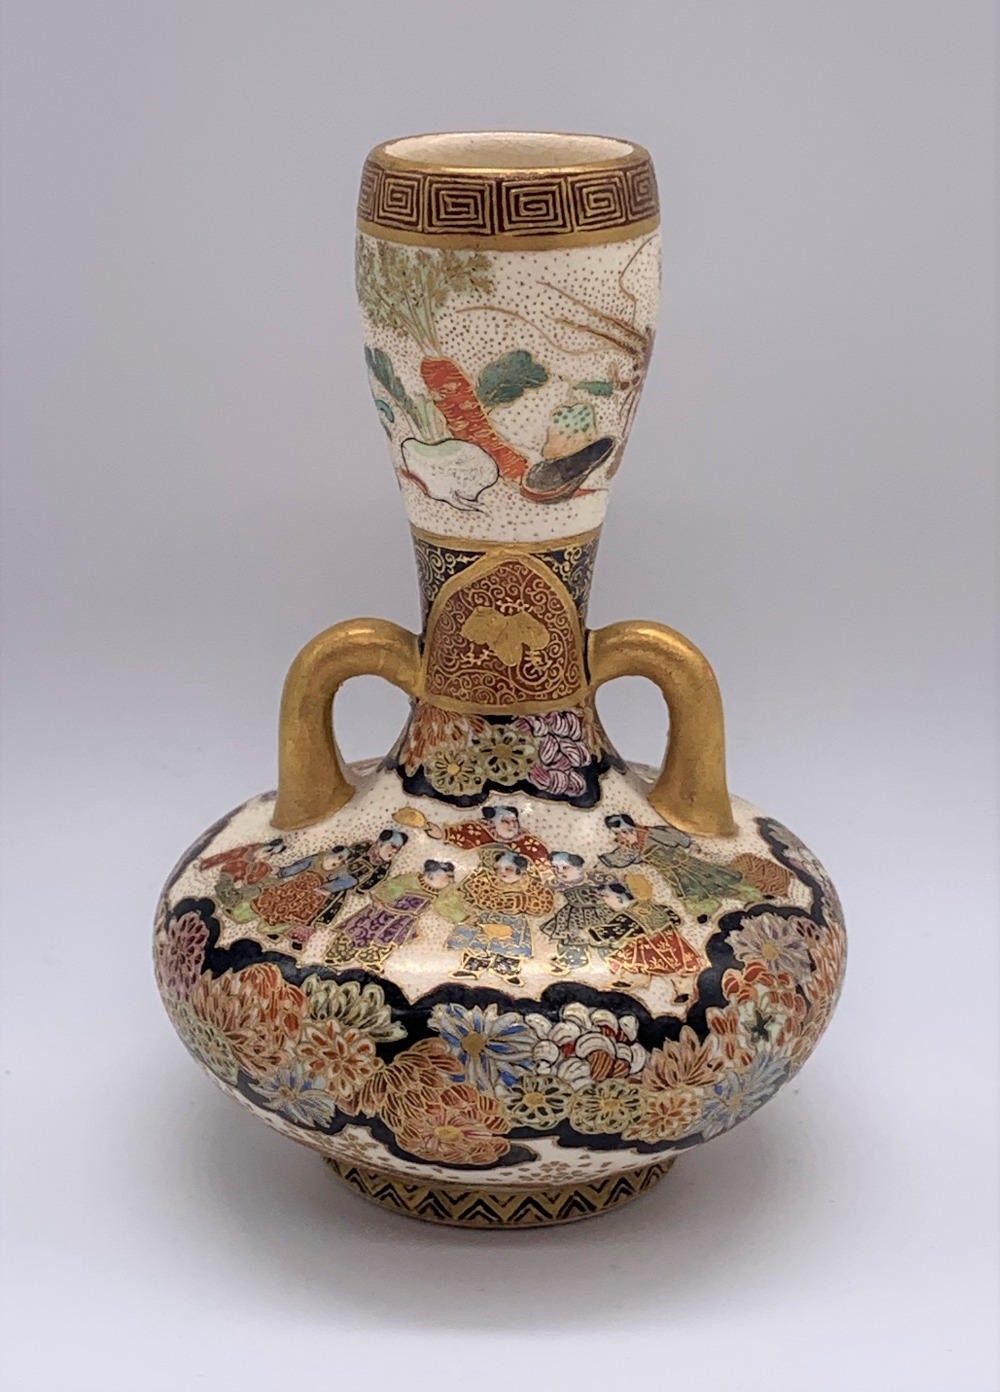 A Japanese Meiji period Satsuma twin handled vase of small proportions decorated with figures and